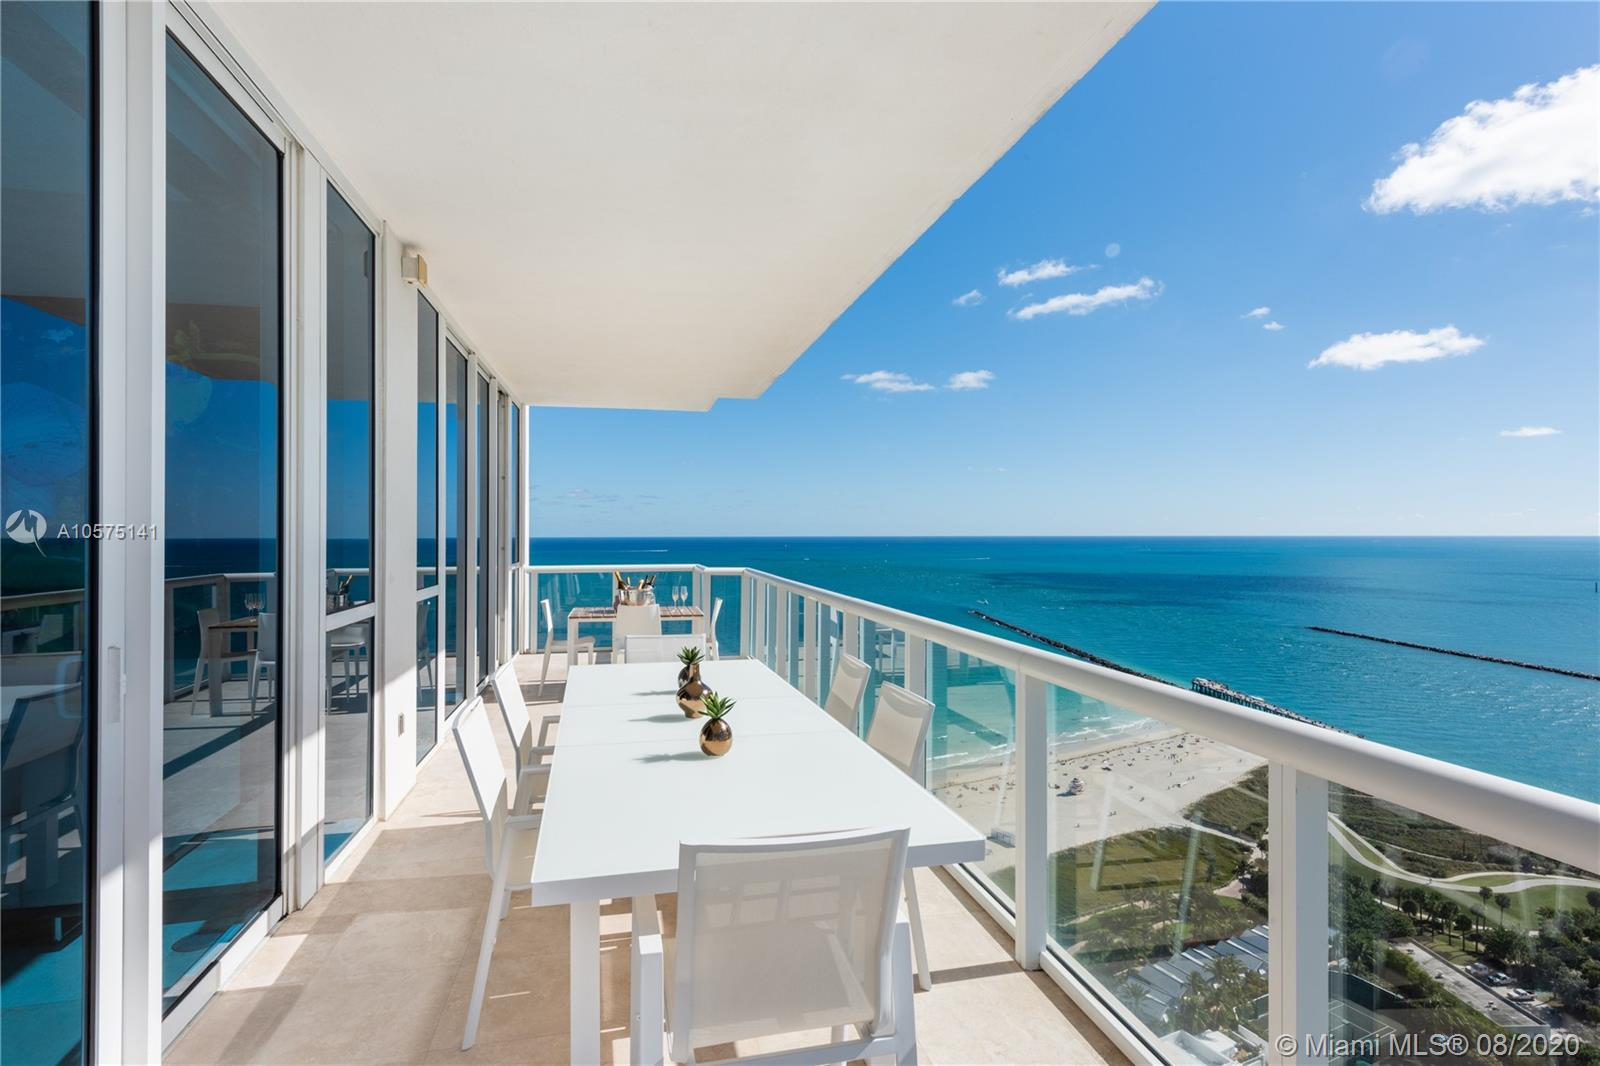 50 Pointe dr-3302 miami-beach-fl-33139-a10575141-Pic02